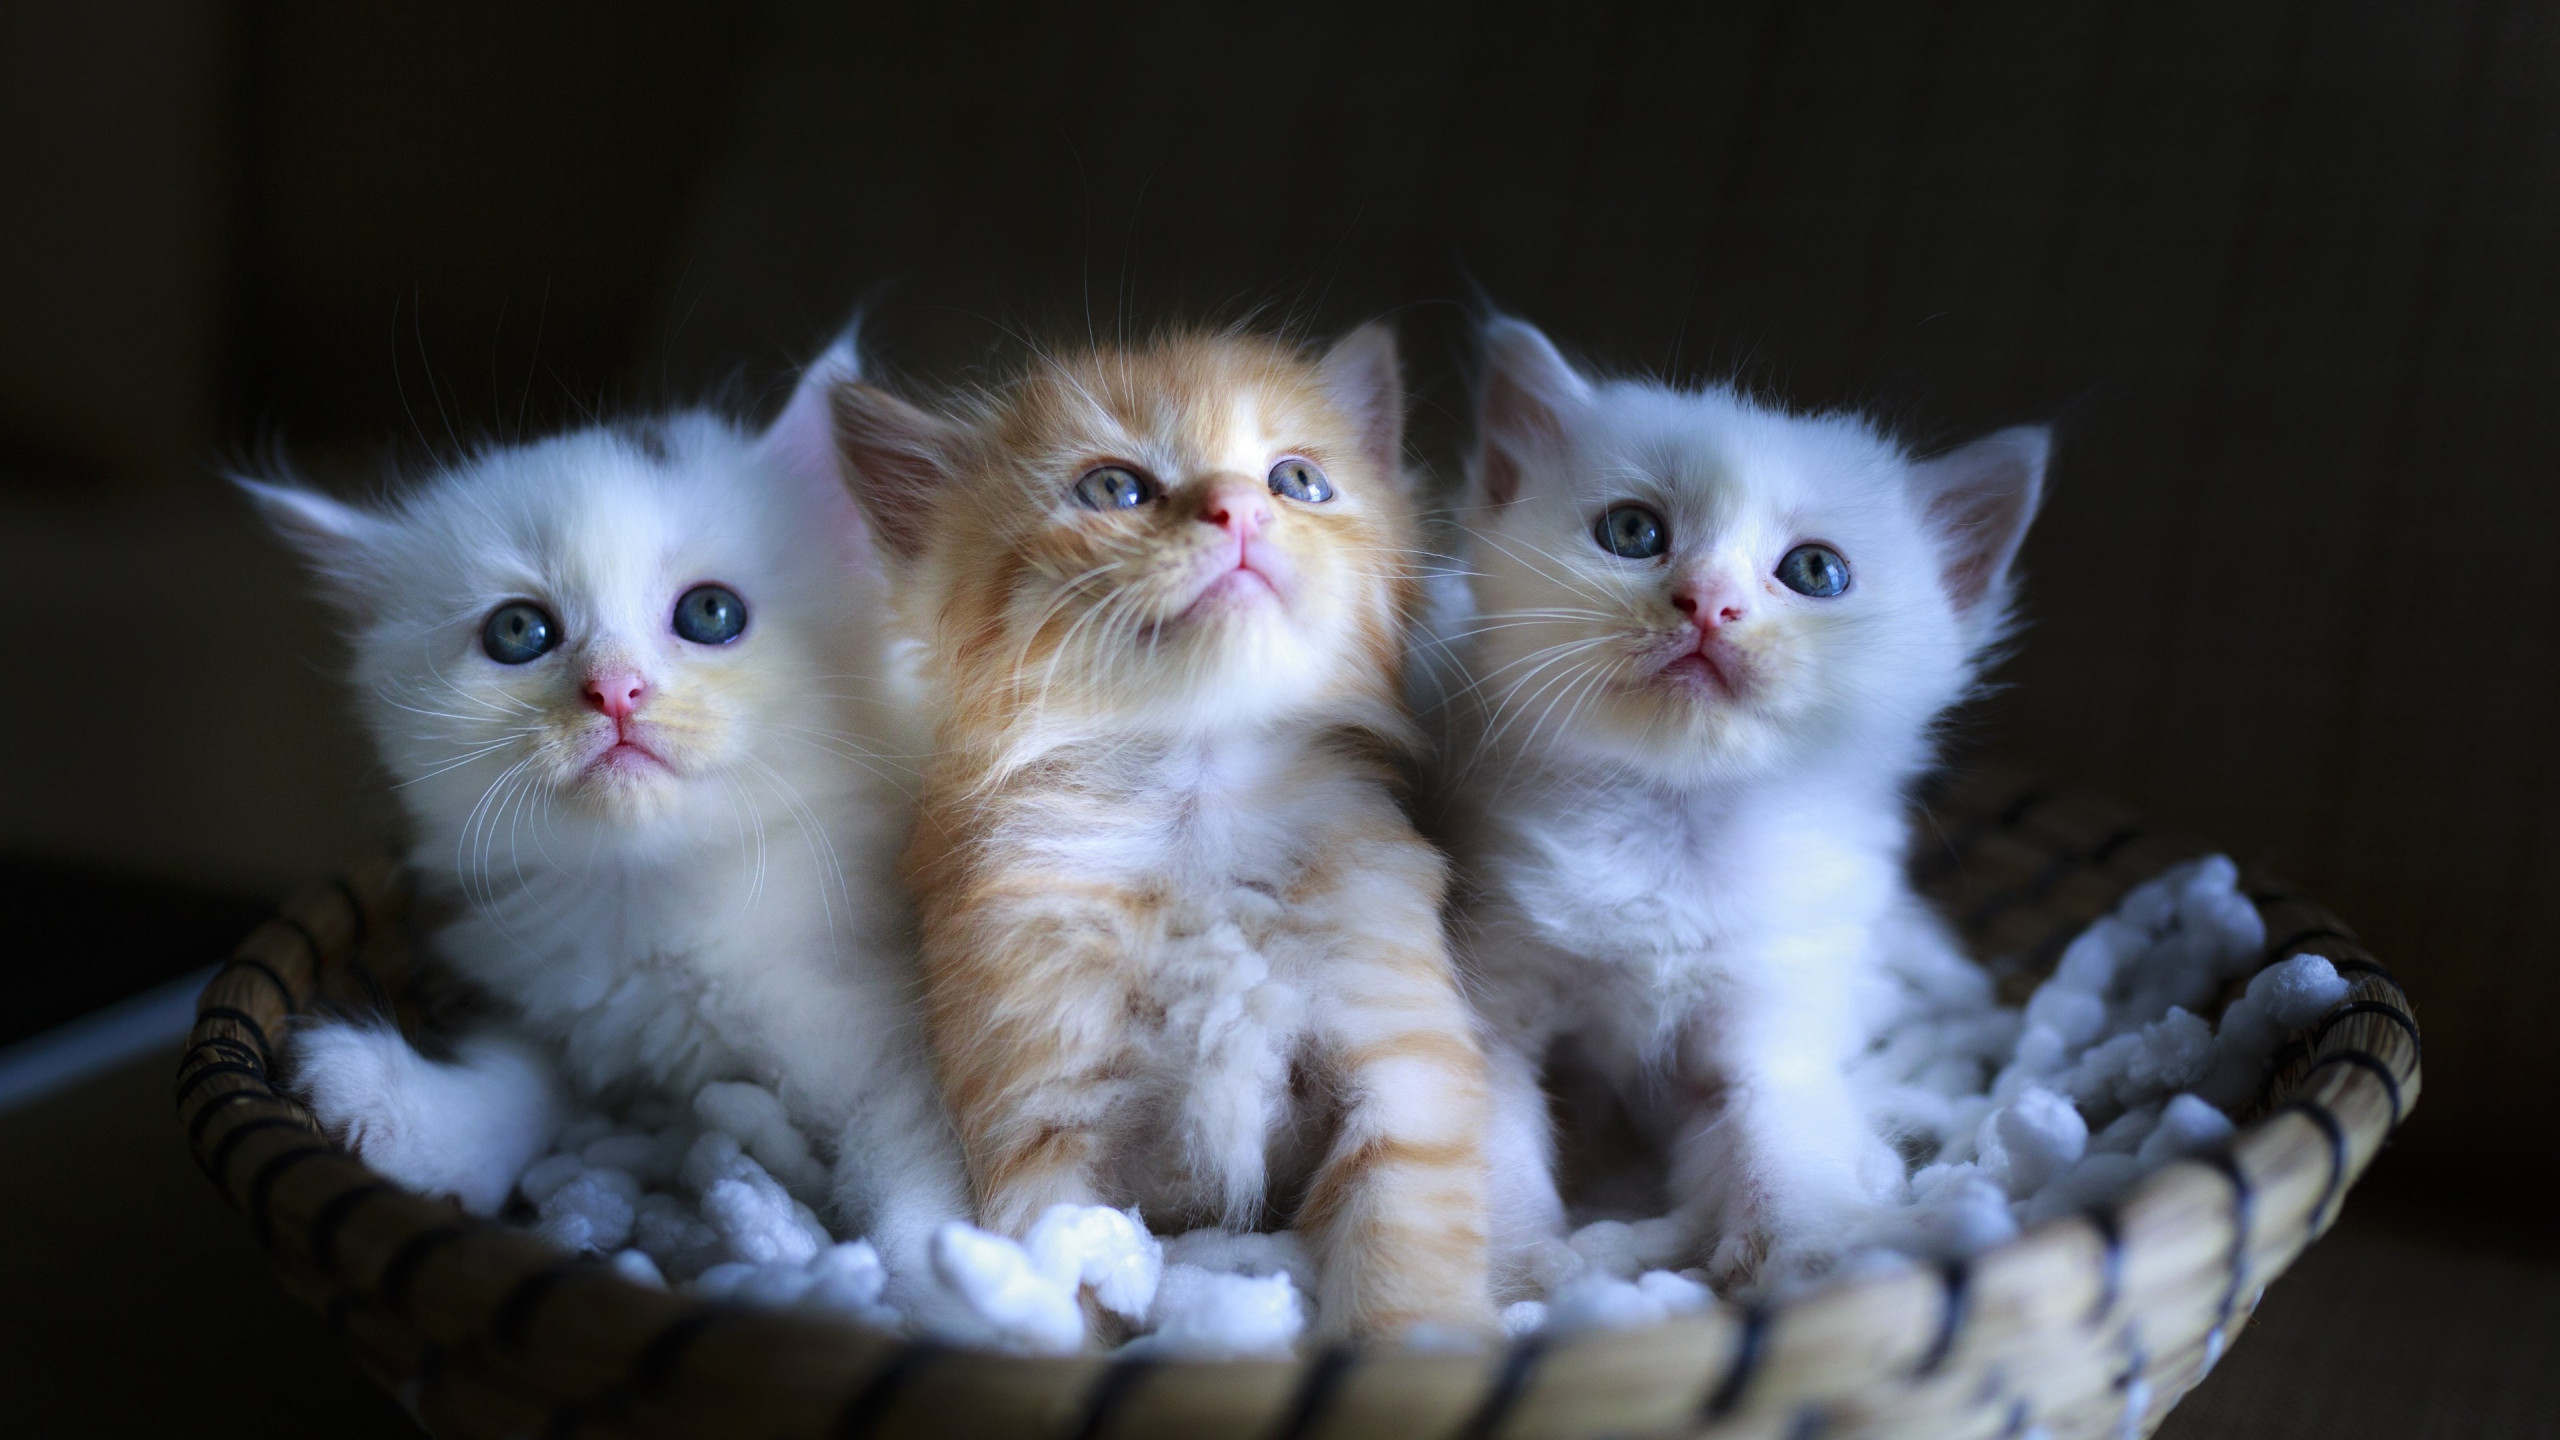 Three cute kittens wallpaper 2560x1440